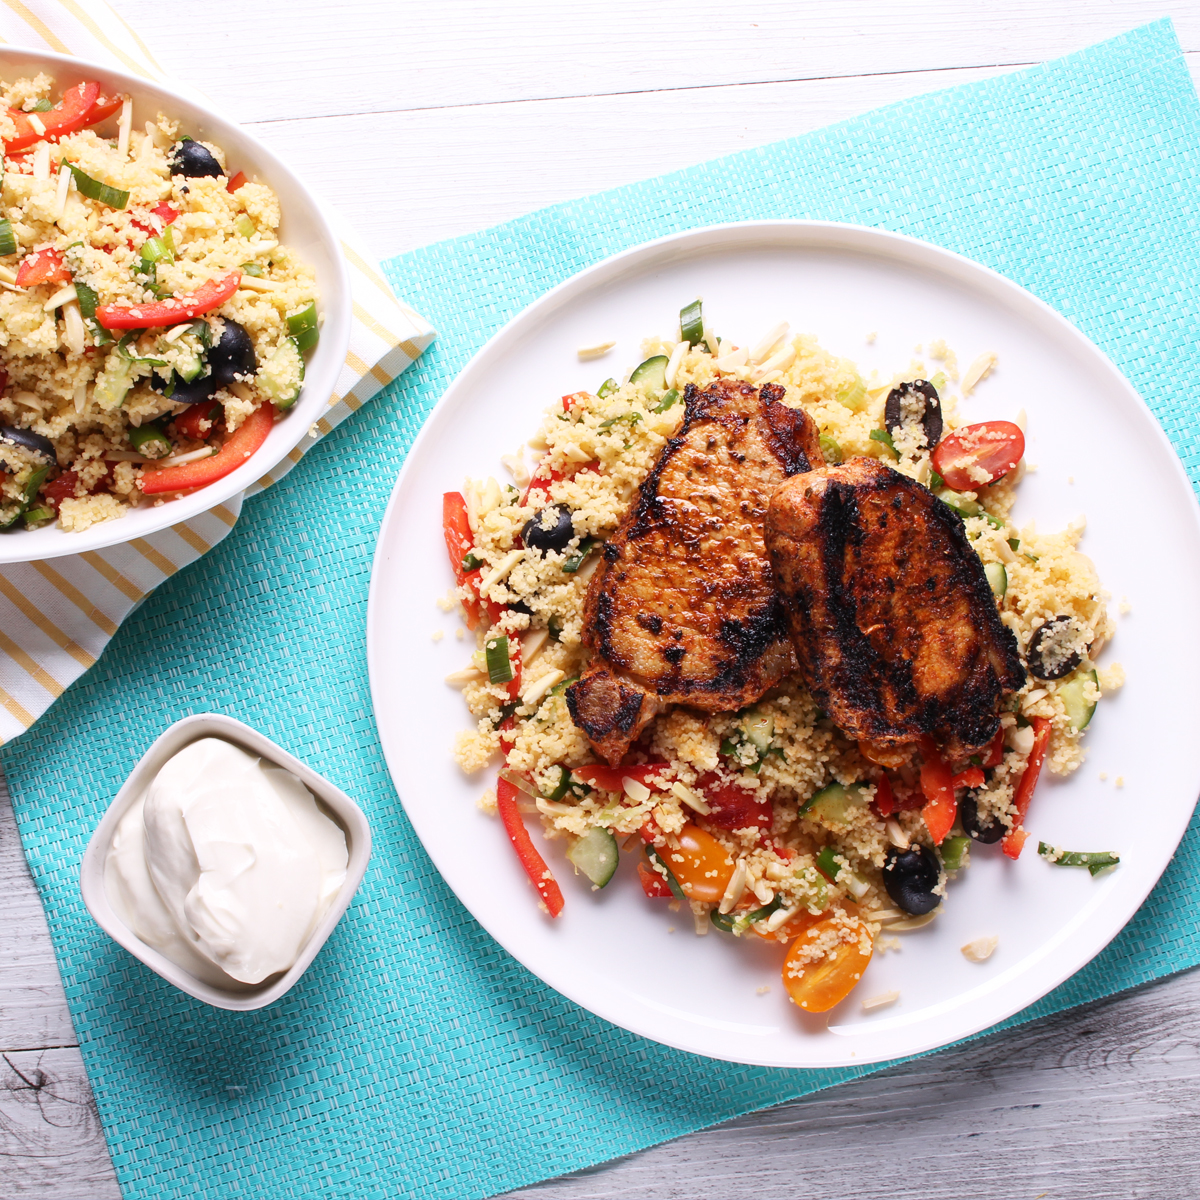 Greek Loin Steaks with Mediterranean couscous - pork loin steaks